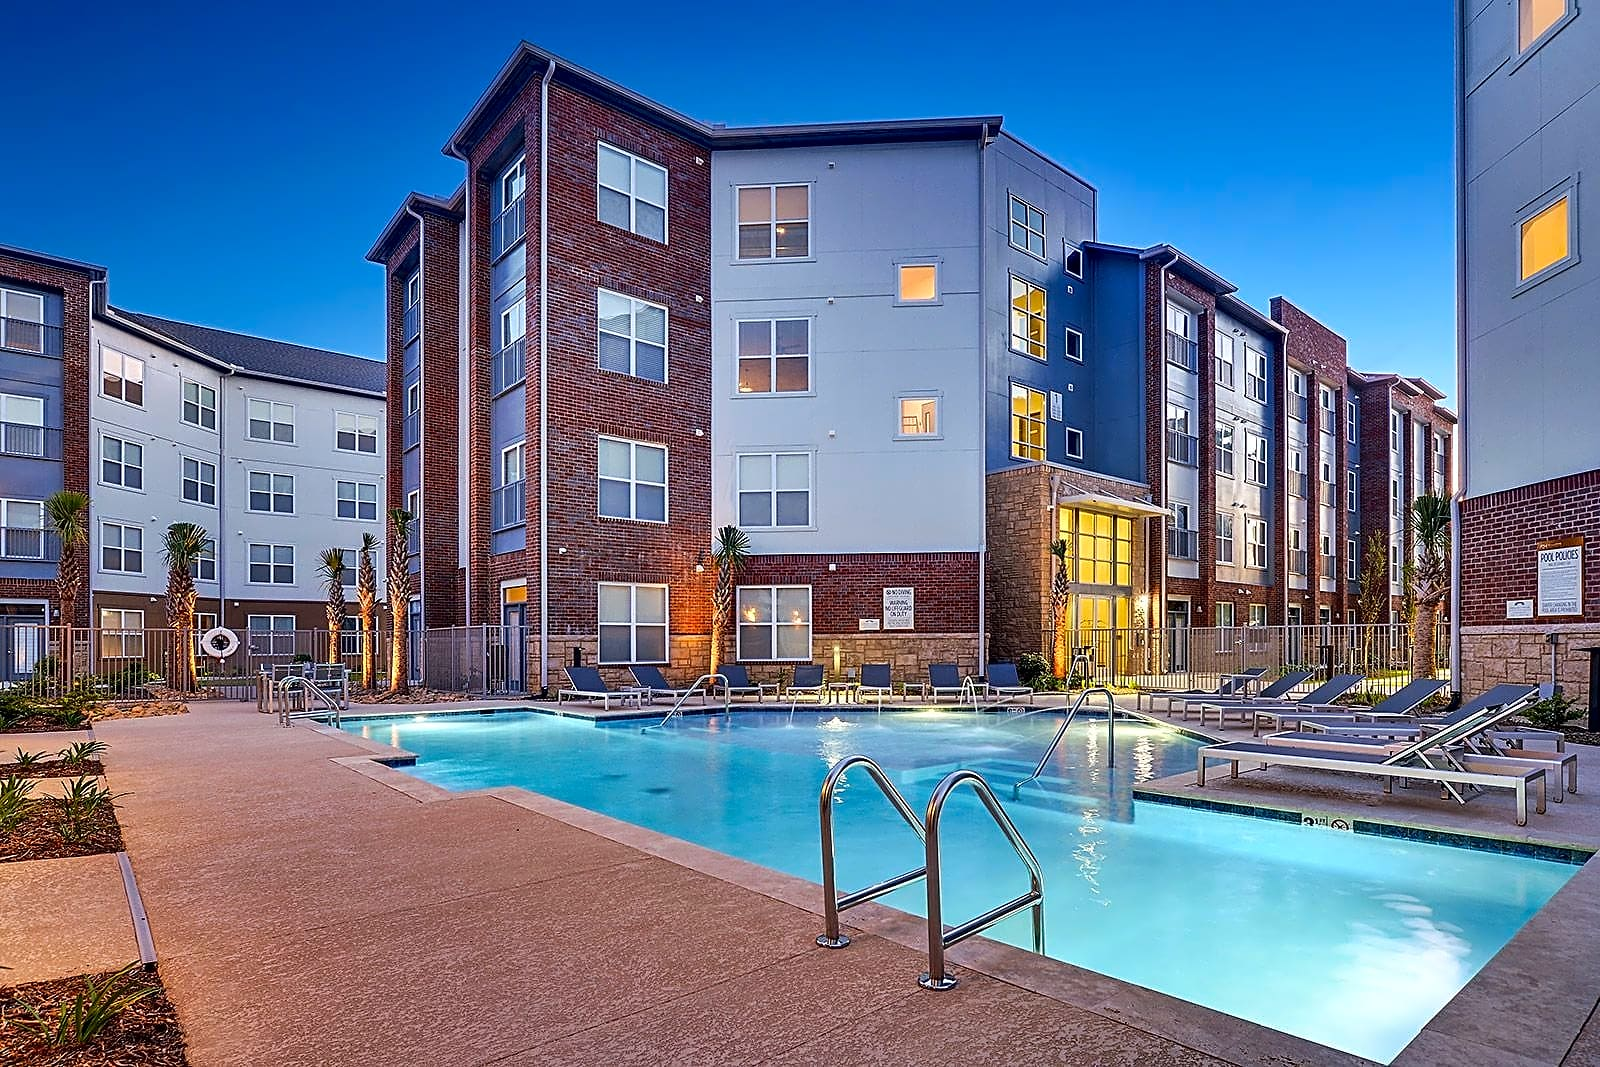 Apartments Near Southern River House for Southern University and A & M College Students in Baton Rouge, LA